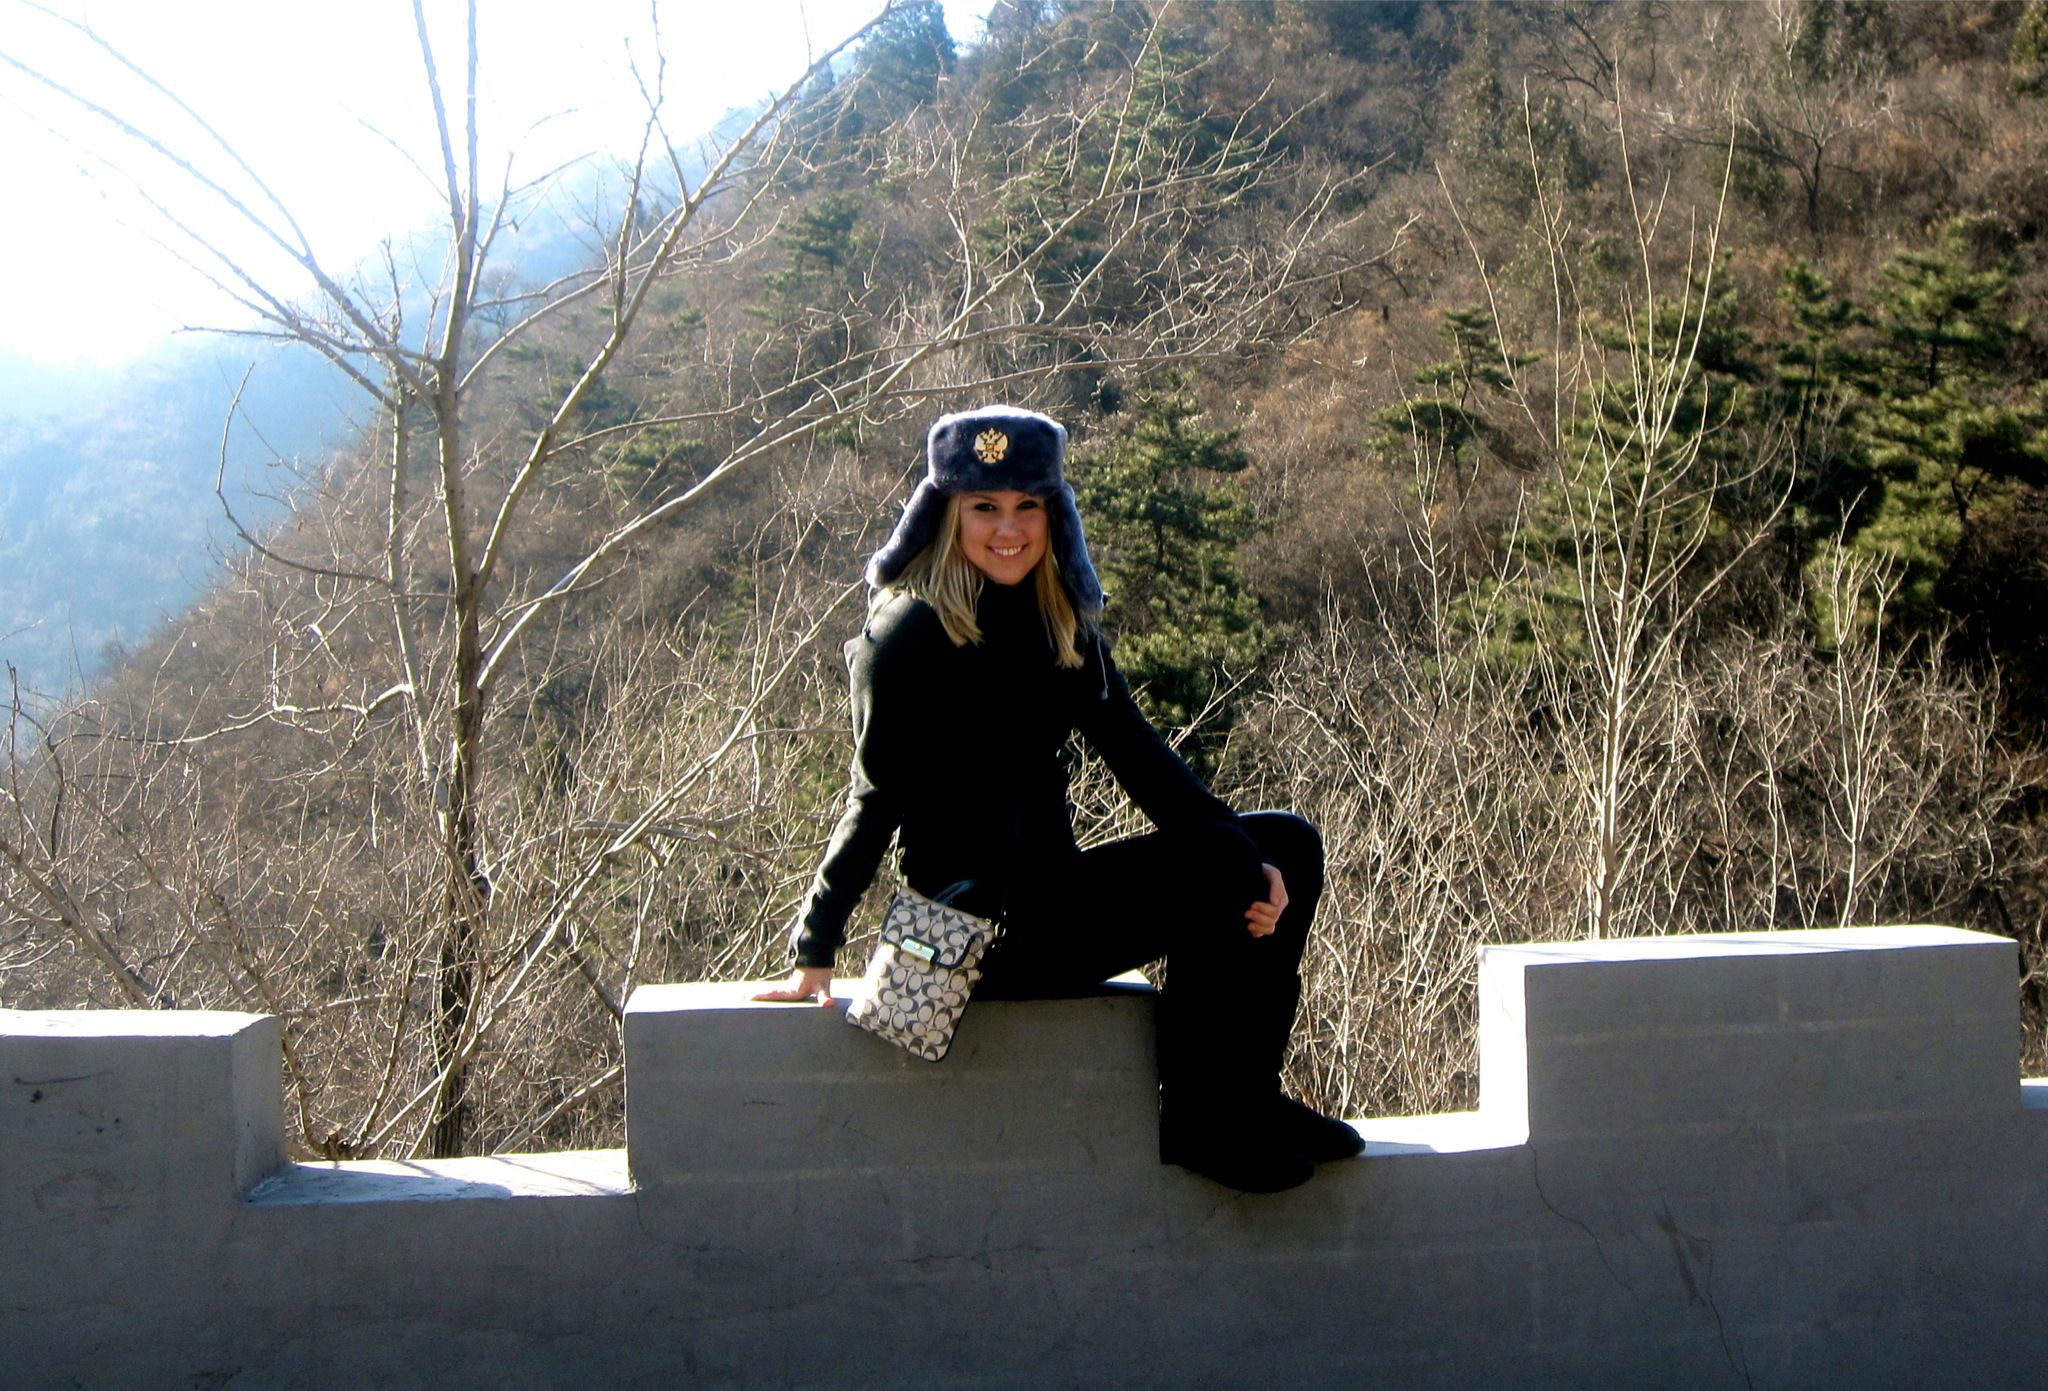 - Visiting the Great Wall of China a few days after my concussion.